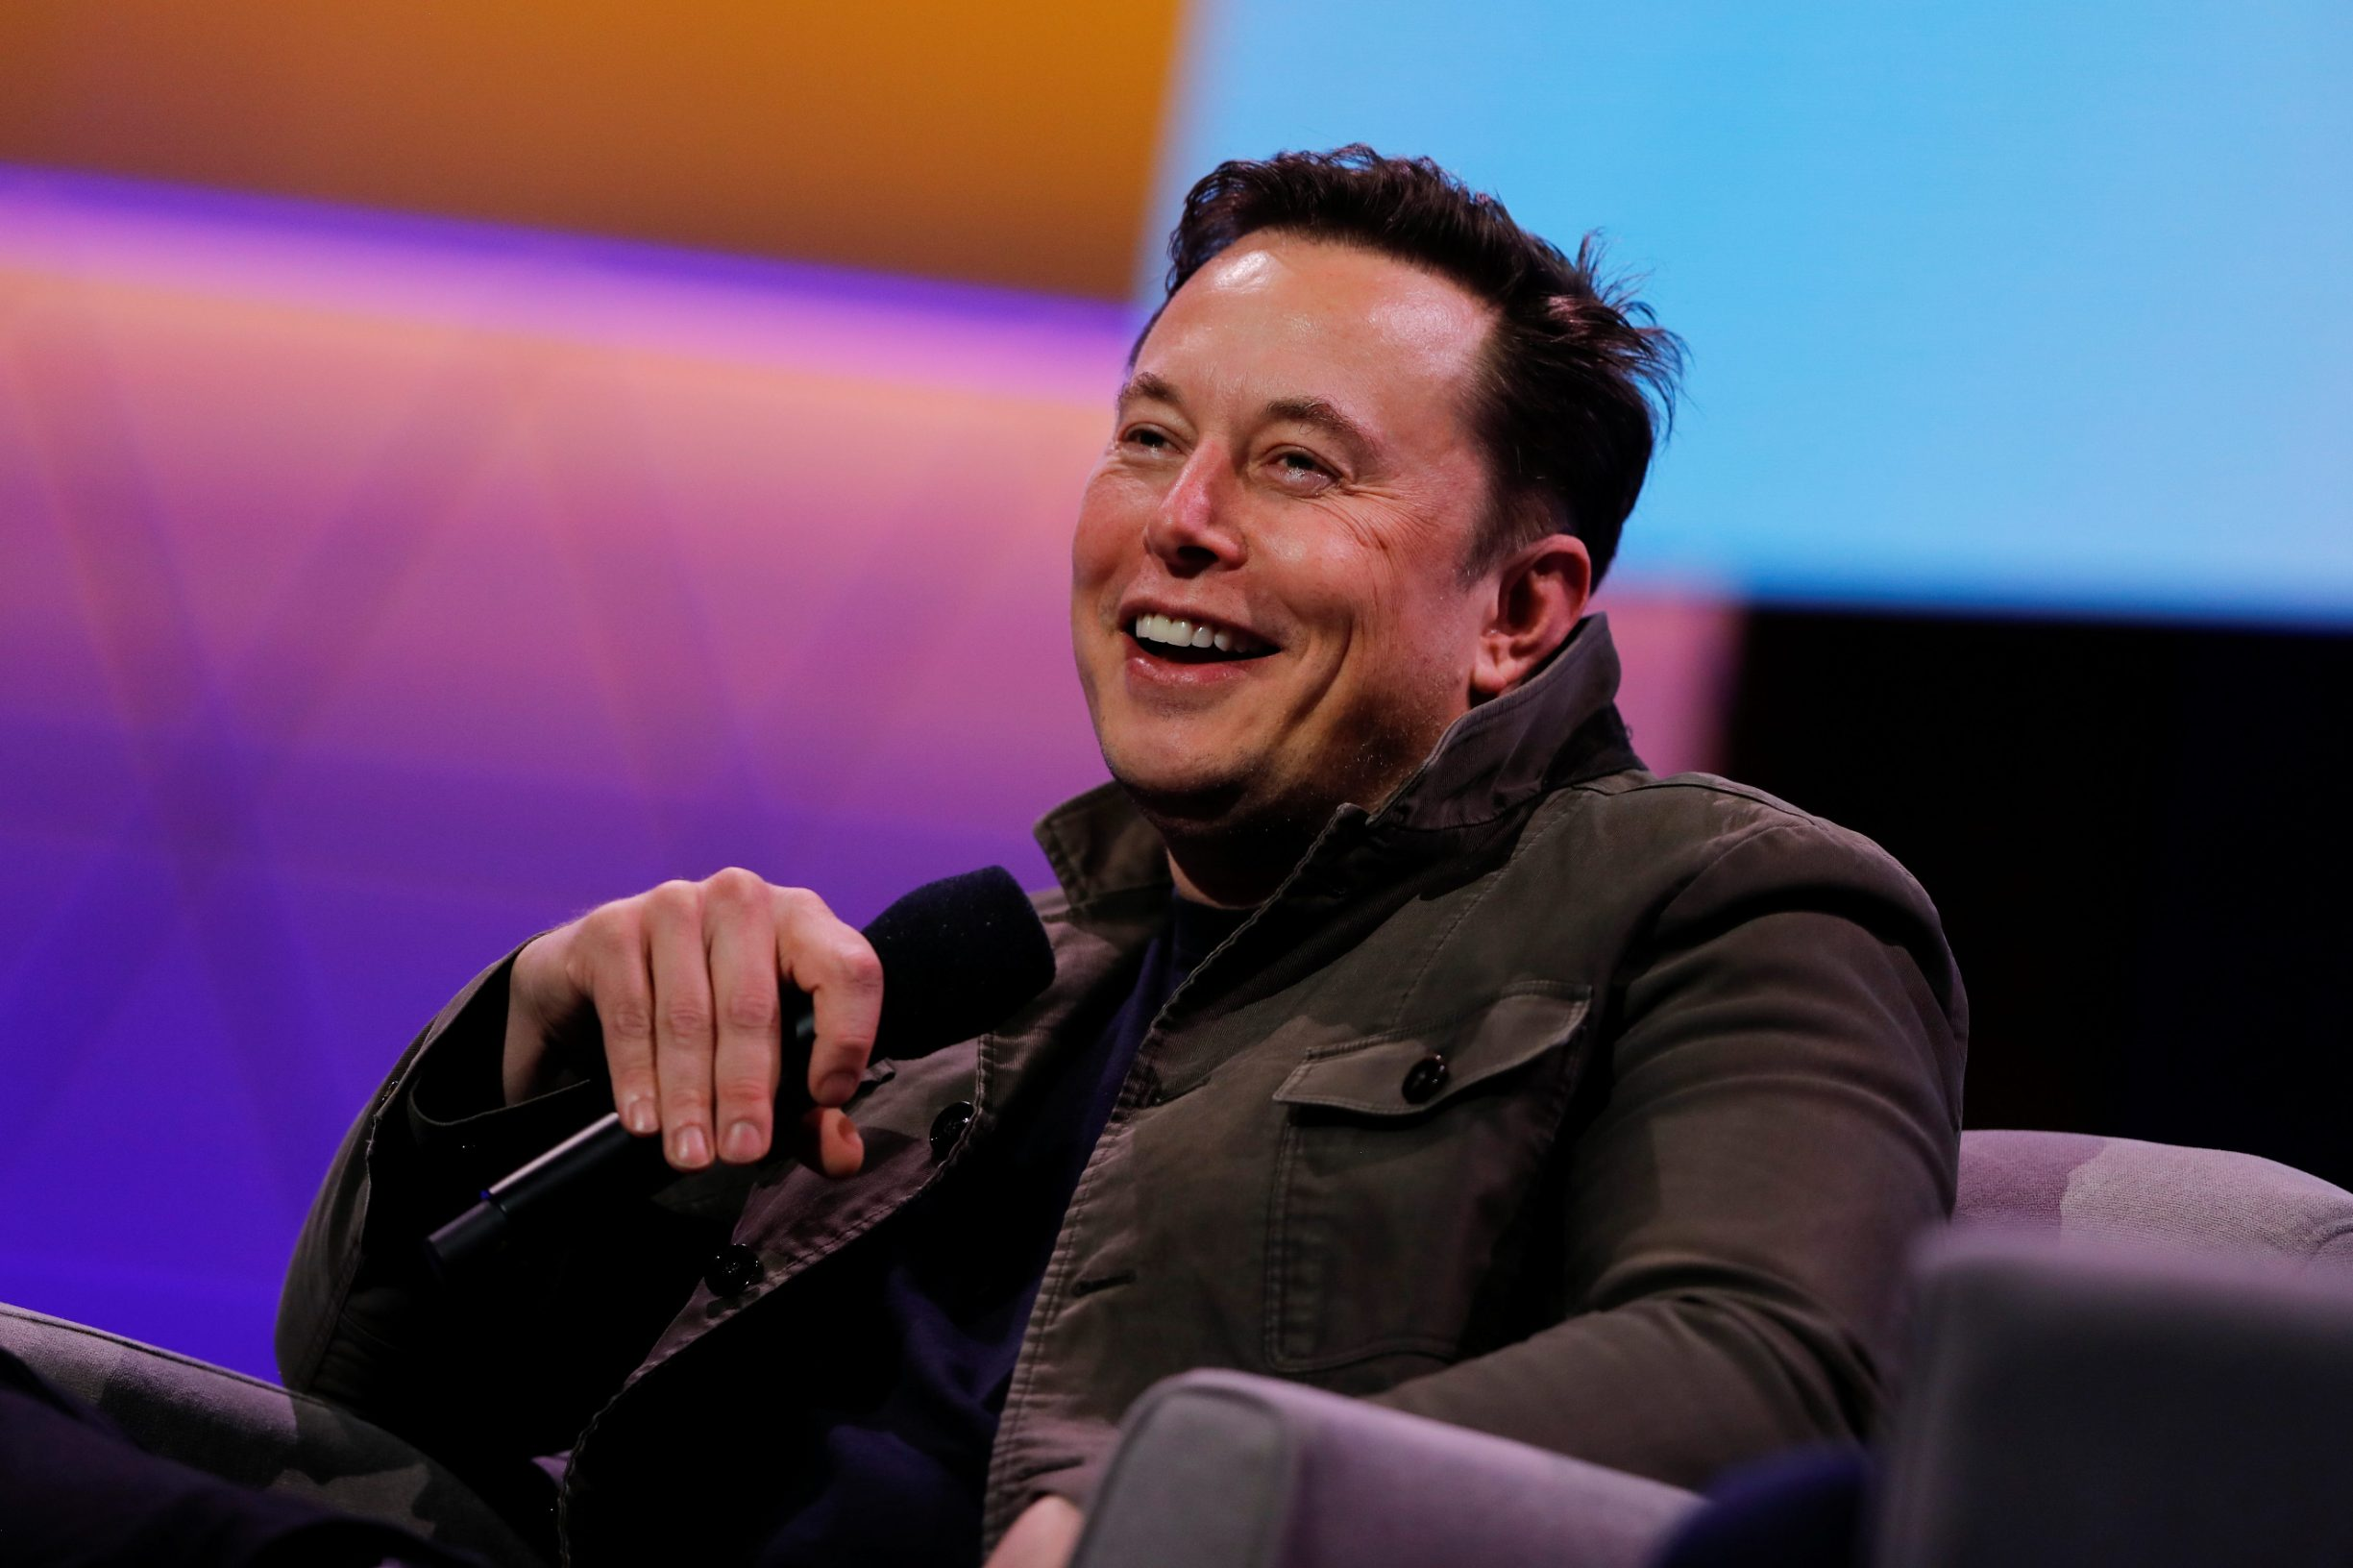 SpaceX owner and Tesla CEO Elon Musk reacts during a conversation with legendary game designer Todd Howard (not pictured) at the E3 gaming convention in Los Angeles, California,.U.S., June 13, 2019.  REUTERS/Mike Blake